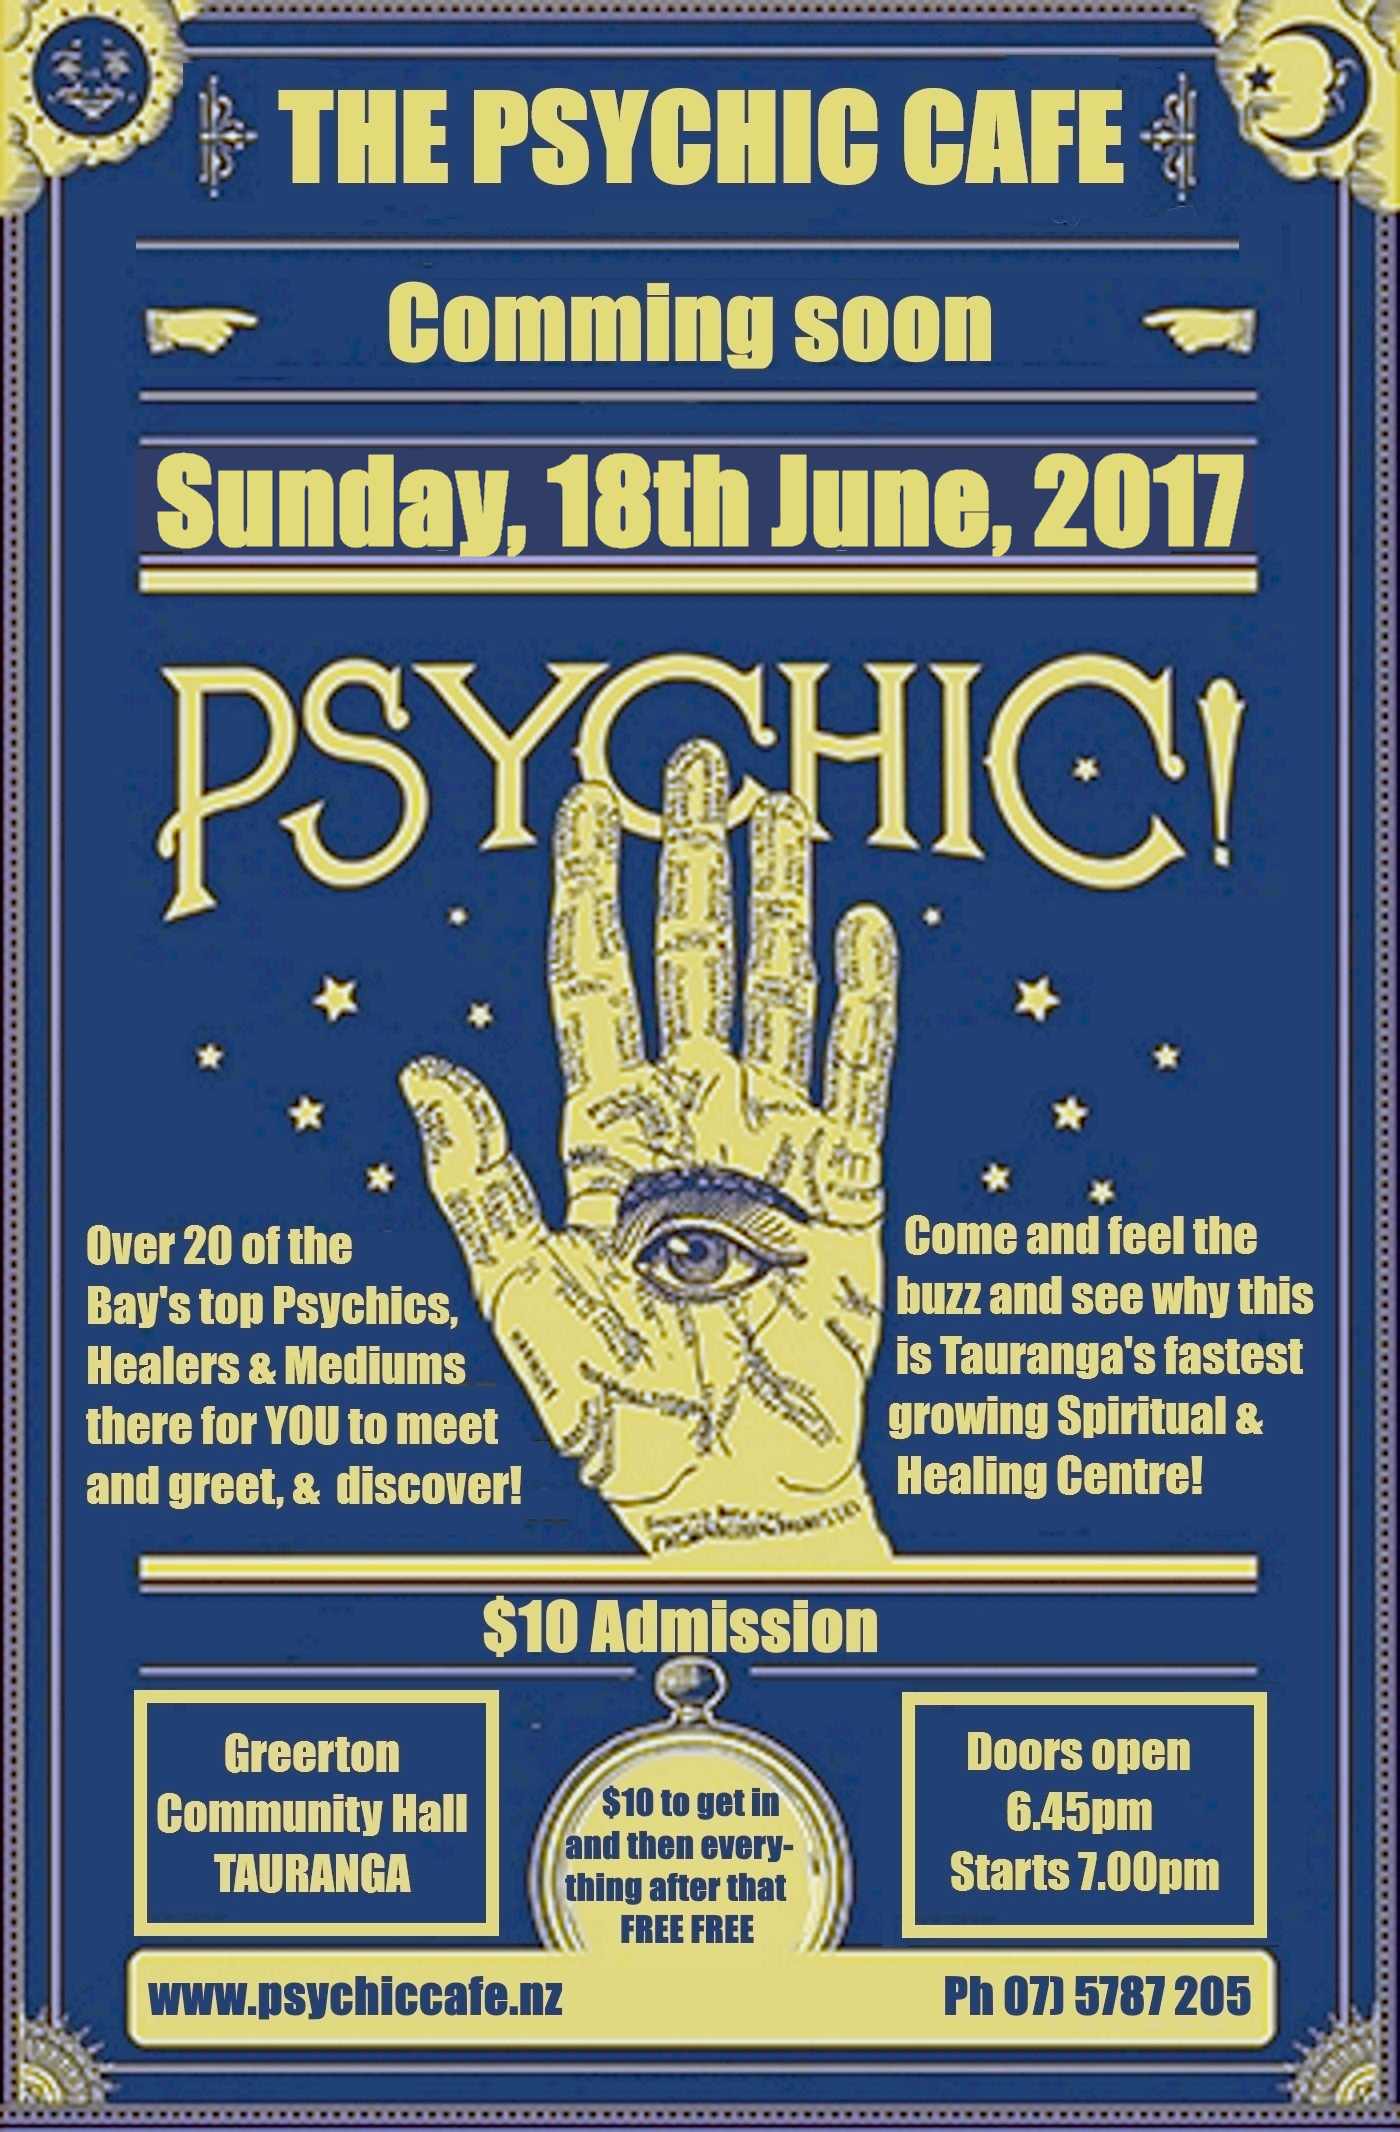 See what the 'buzz' is about…Psychic Cafe this Sunday 18th June